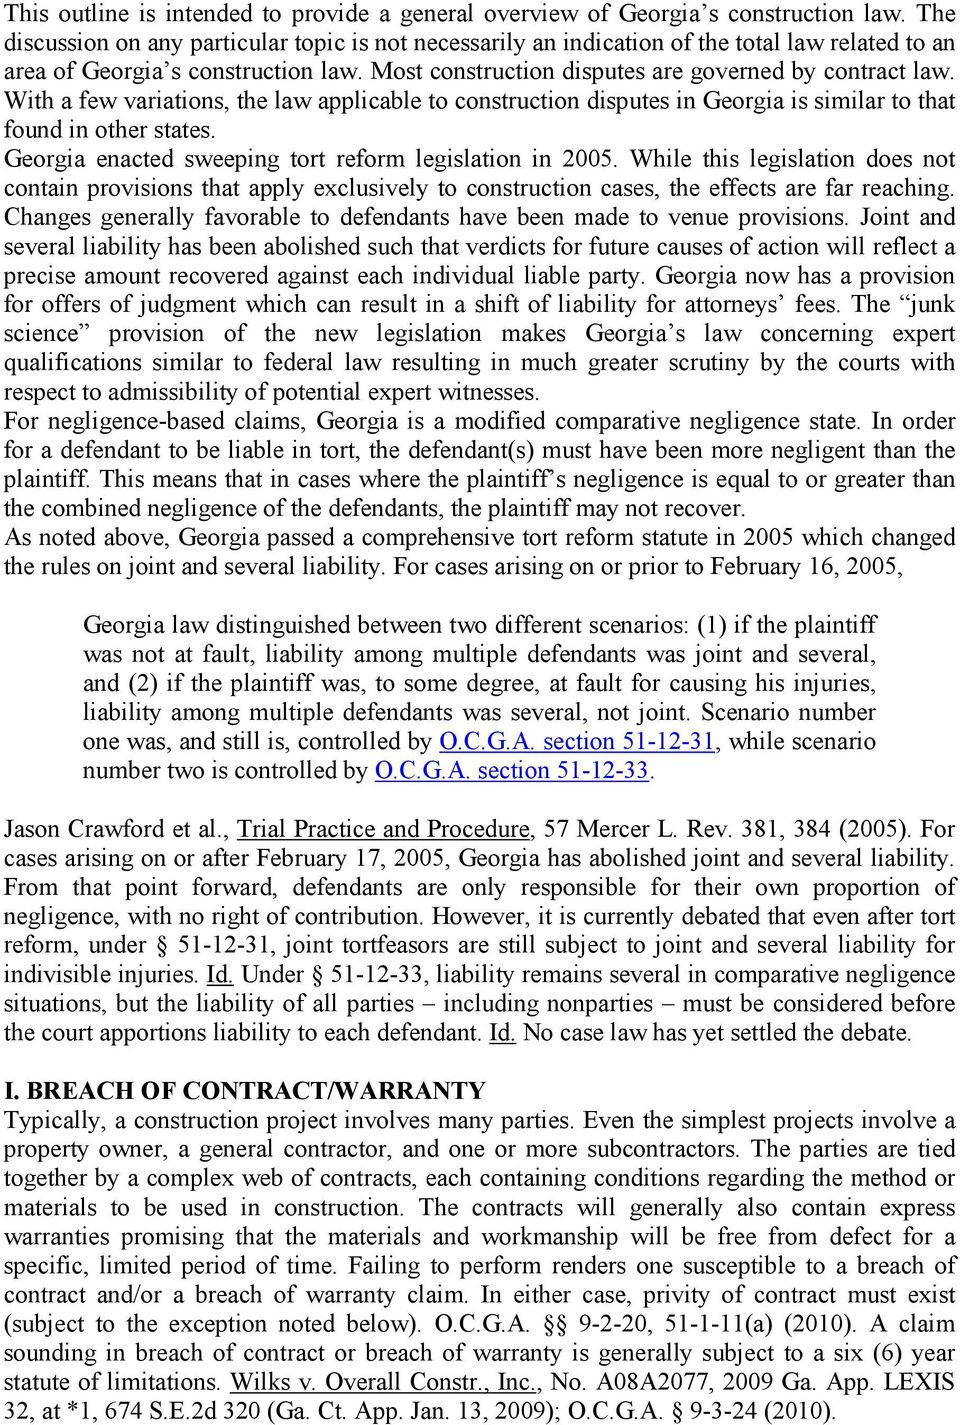 With a few variations, the law applicable to construction disputes in Georgia is similar to that found in other states. Georgia enacted sweeping tort reform legislation in 2005.